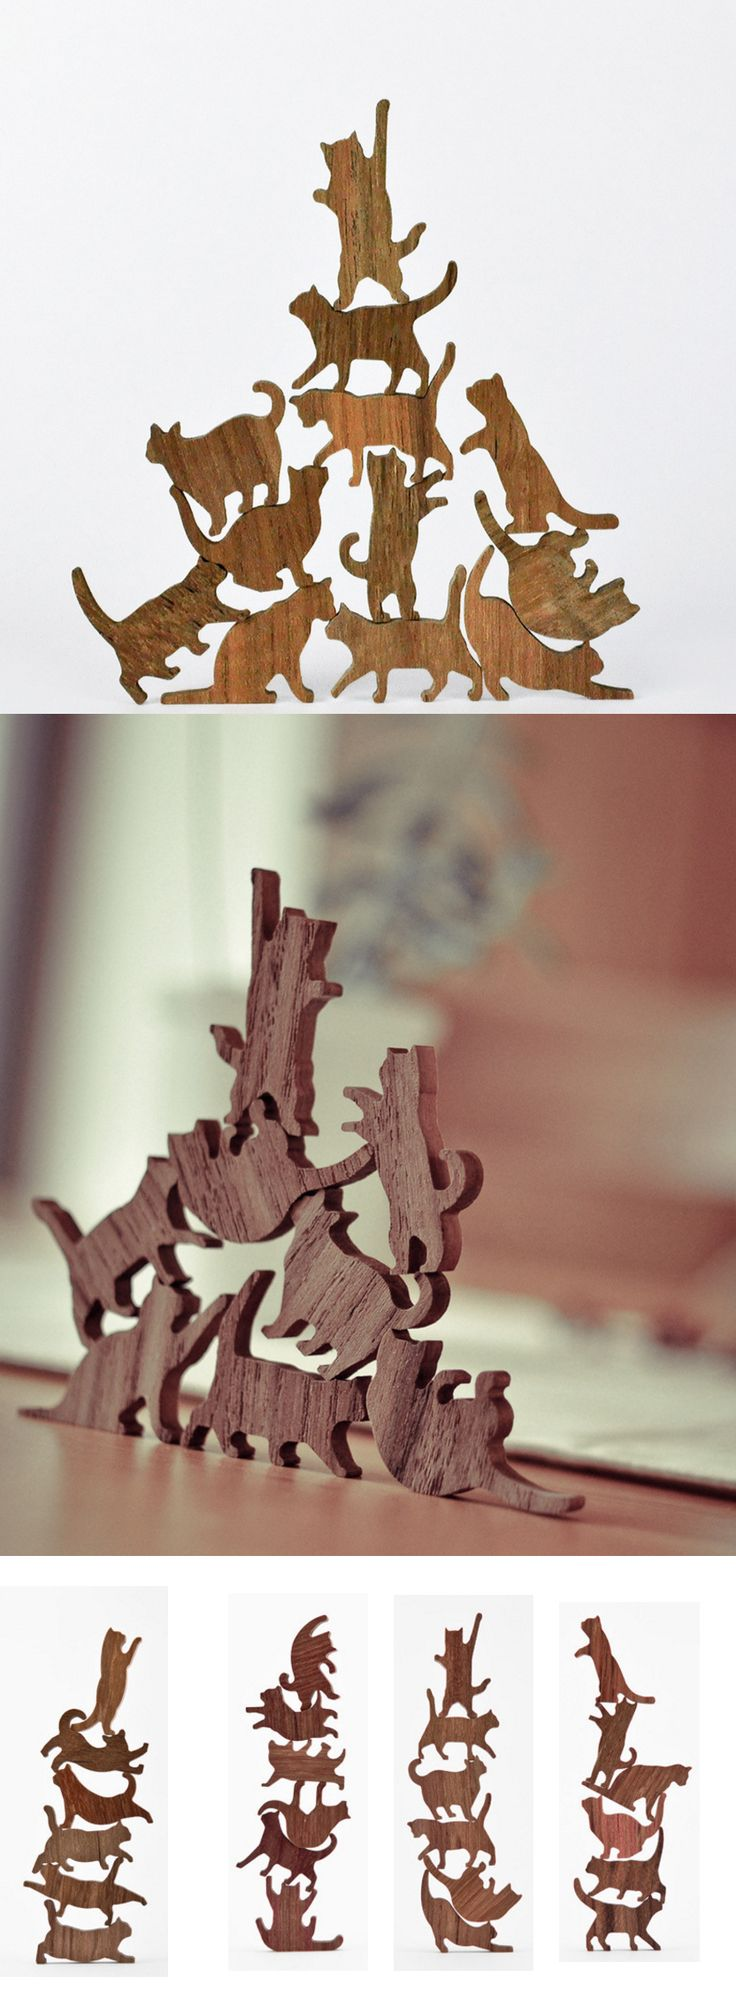 """Wooden Cat Stacking Game. $19.99 - Each set includes six cats in various poses. Laser cut from solid teak, the cats come in 4 different sets including a vast array of cat poses such as the """"stretch & yawn"""", """"play time"""", """"shrug of indifference,"""" and the classic """"feed me or I'll bite your legs."""" Cats measure approx. 1"""" x 1"""""""